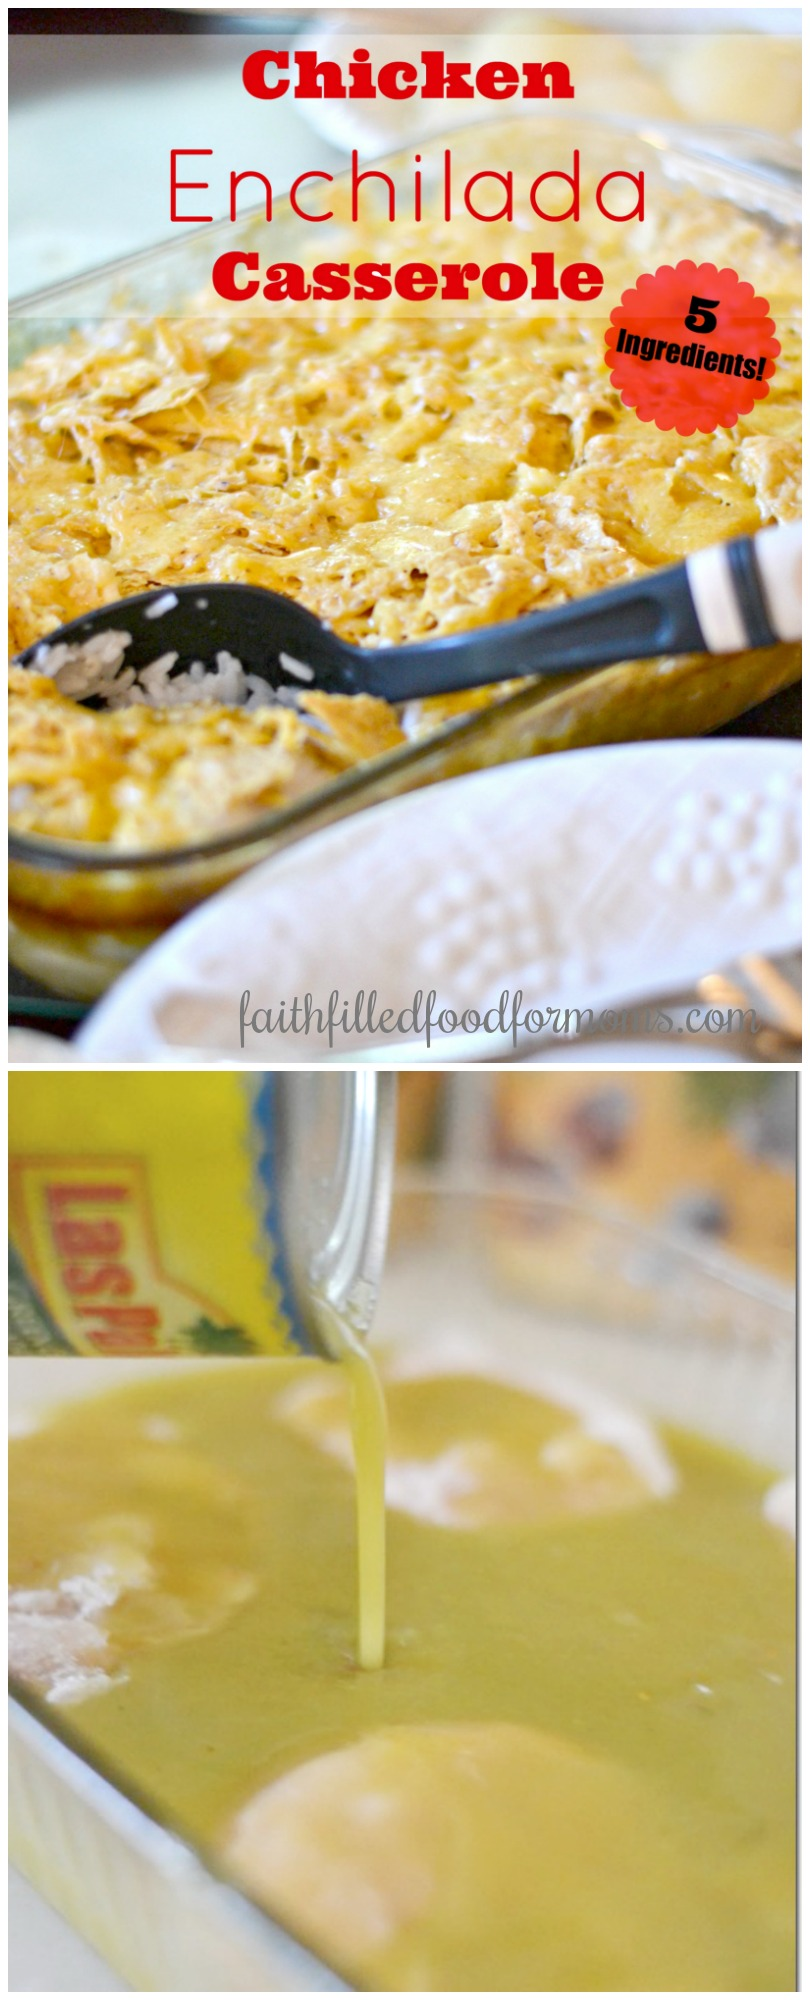 Chicken Enchilada Casserole made with frozen chicken breasts, lots of cheese and only 5 ingredients! A super easy, healthy and quick recipe you bake in the oven! This is perfect for your meal plans and can be frozen for later too! #enchiladas #chickendinner #chickenrecipes #casserole #faithfilledfoodformoms